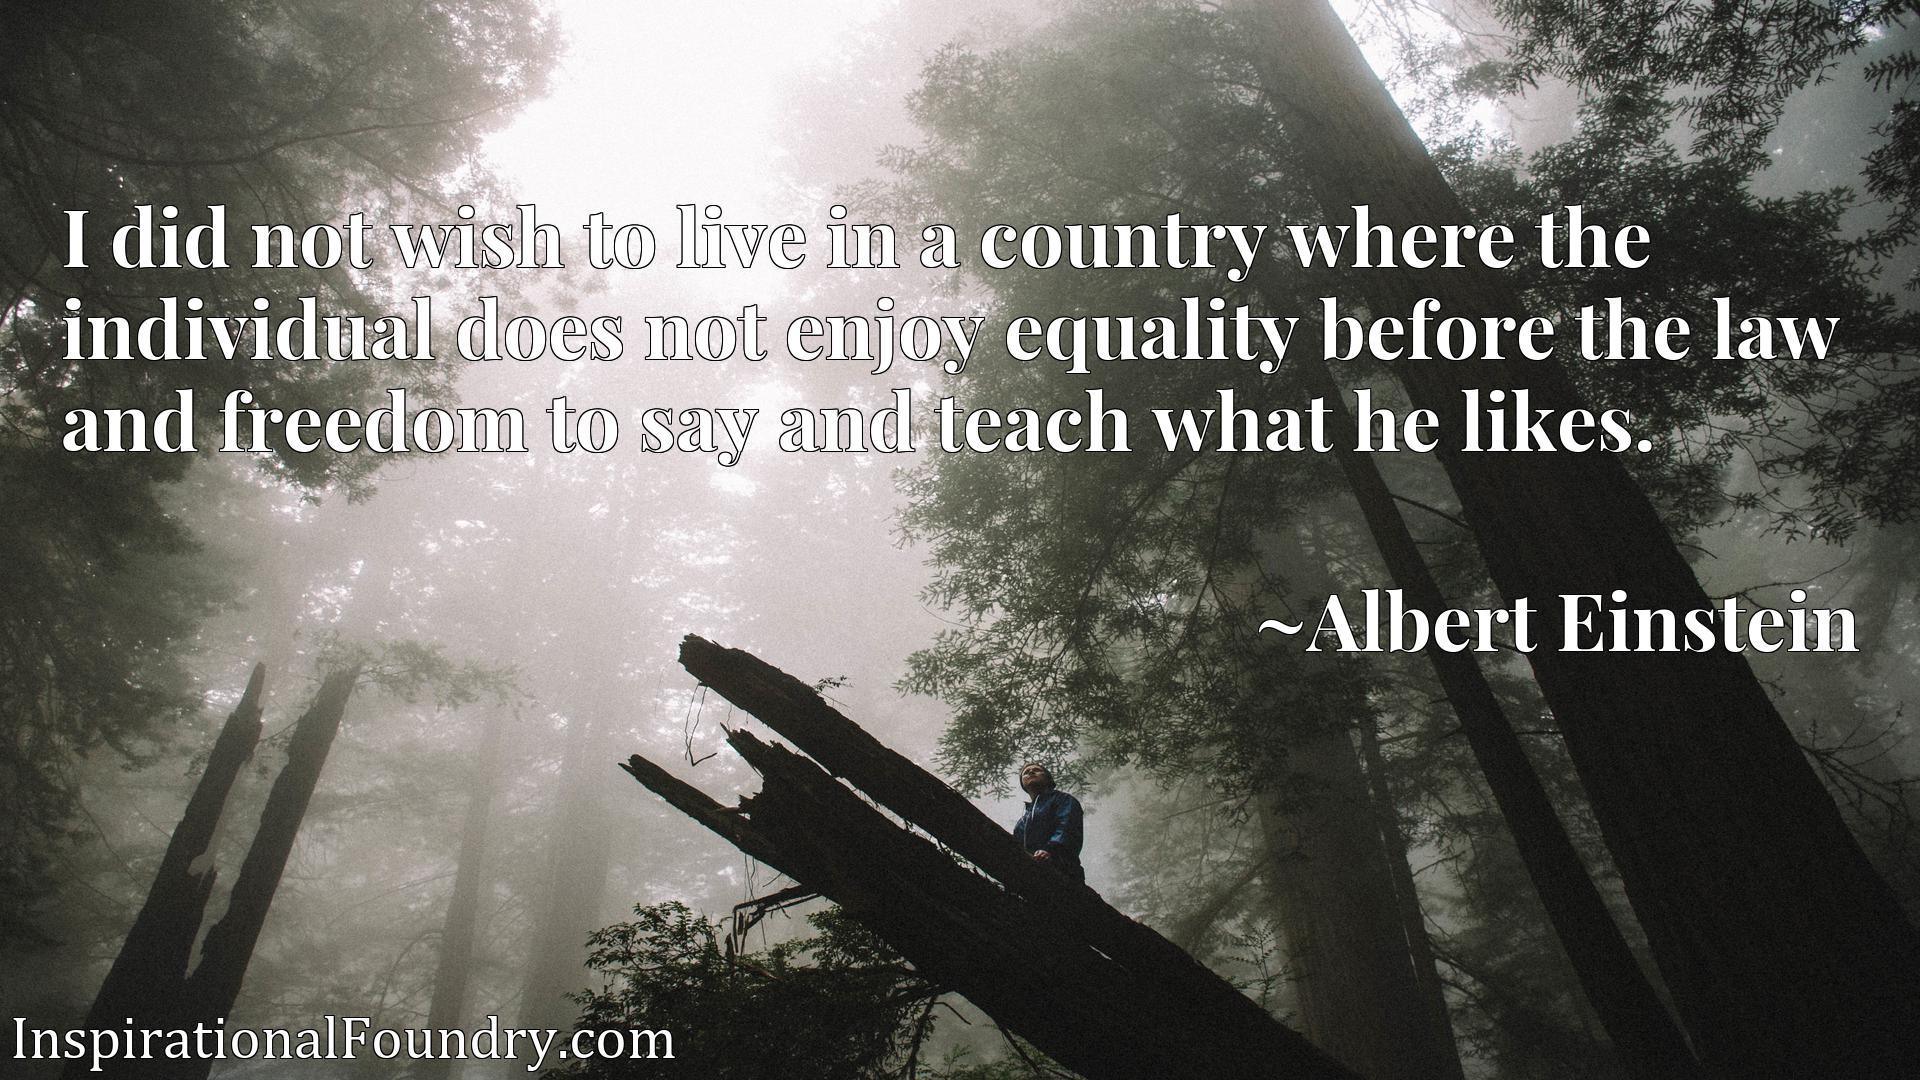 Quote Picture :I did not wish to live in a country where the individual does not enjoy equality before the law and freedom to say and teach what he likes.